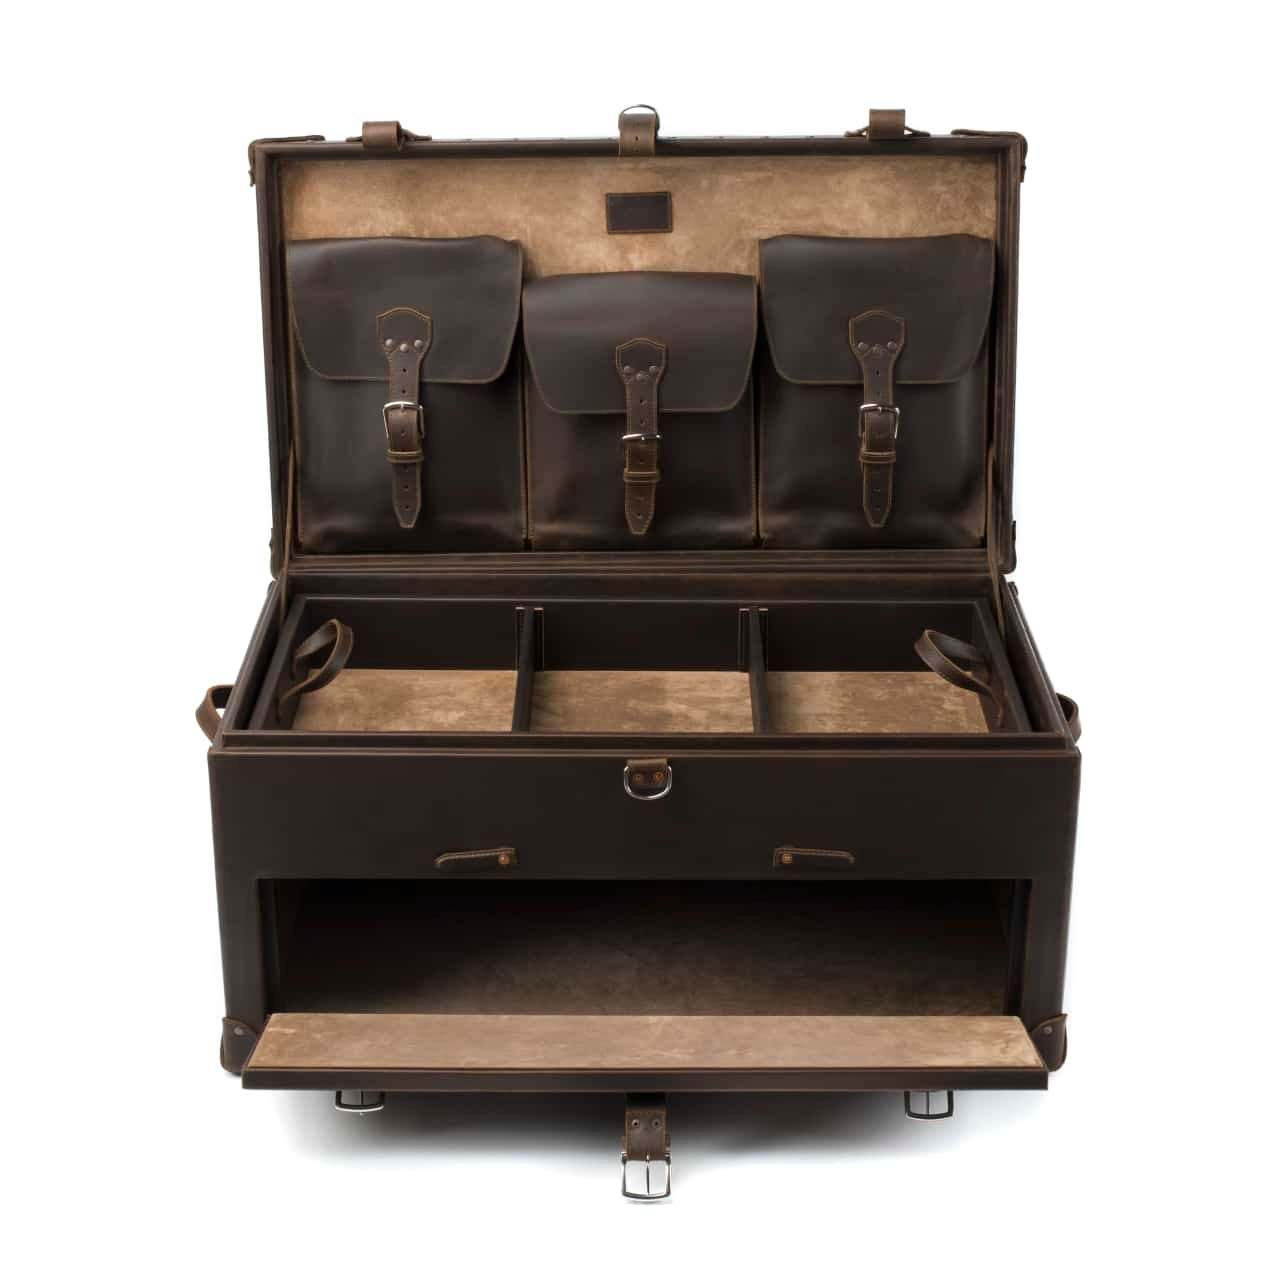 Leather Trunk in color Dark Coffee Brown shown from the Front with Top and Bottom Compartments Open and Empty